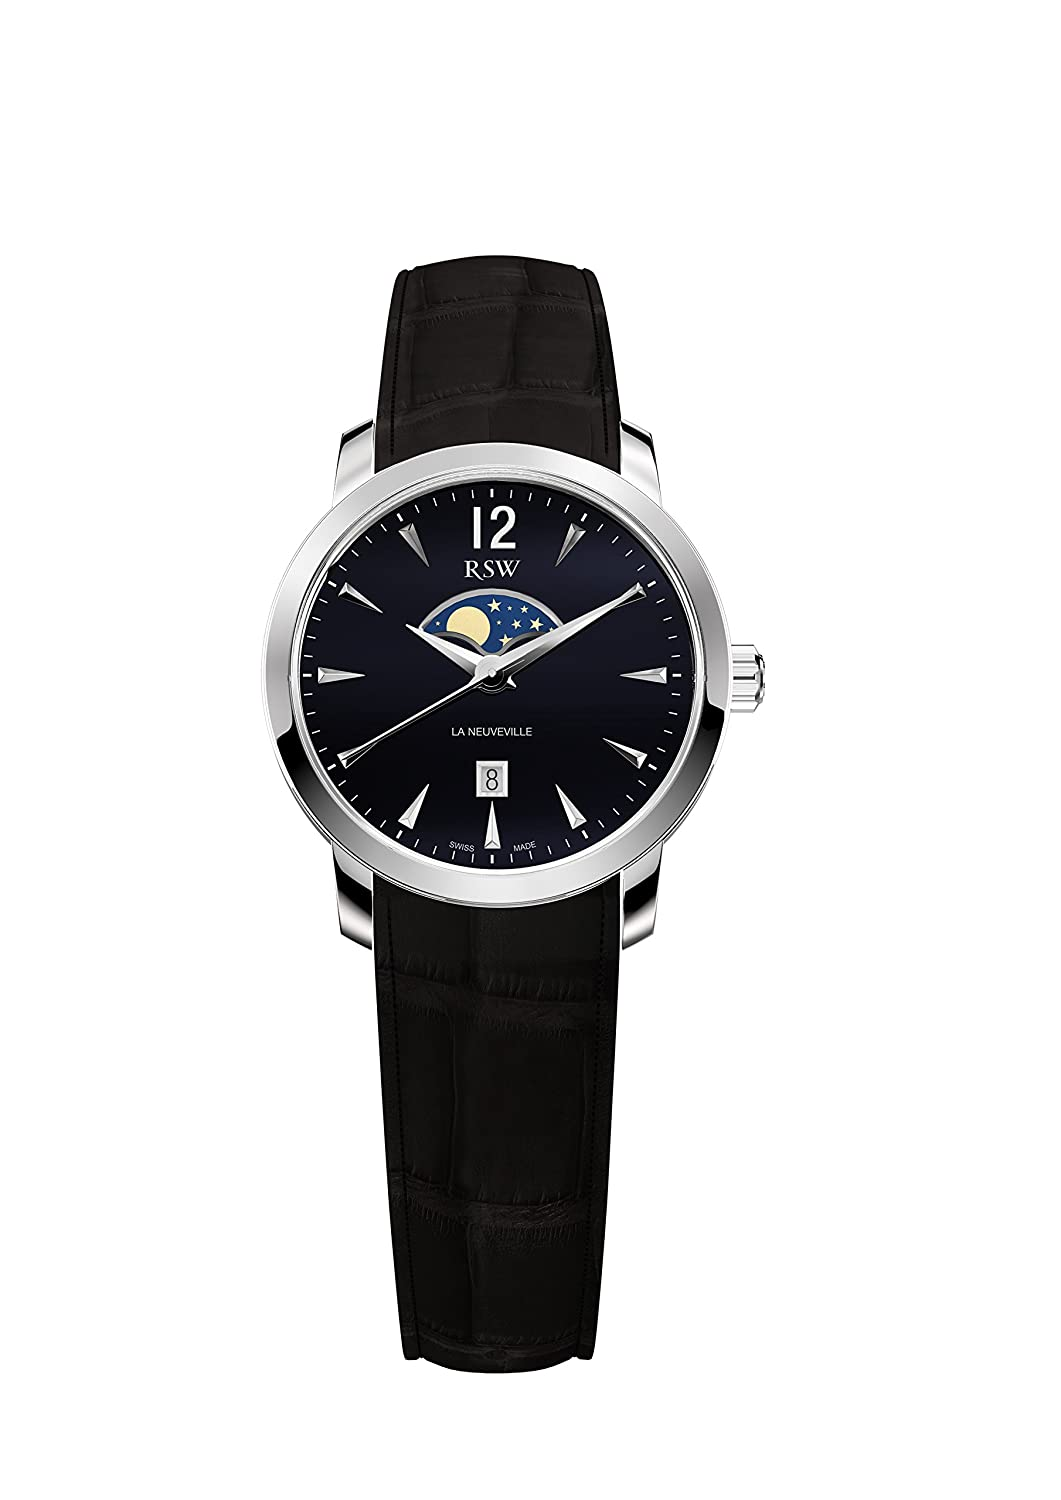 6346. BS. L1.1.00-La Neuveville Moonphase